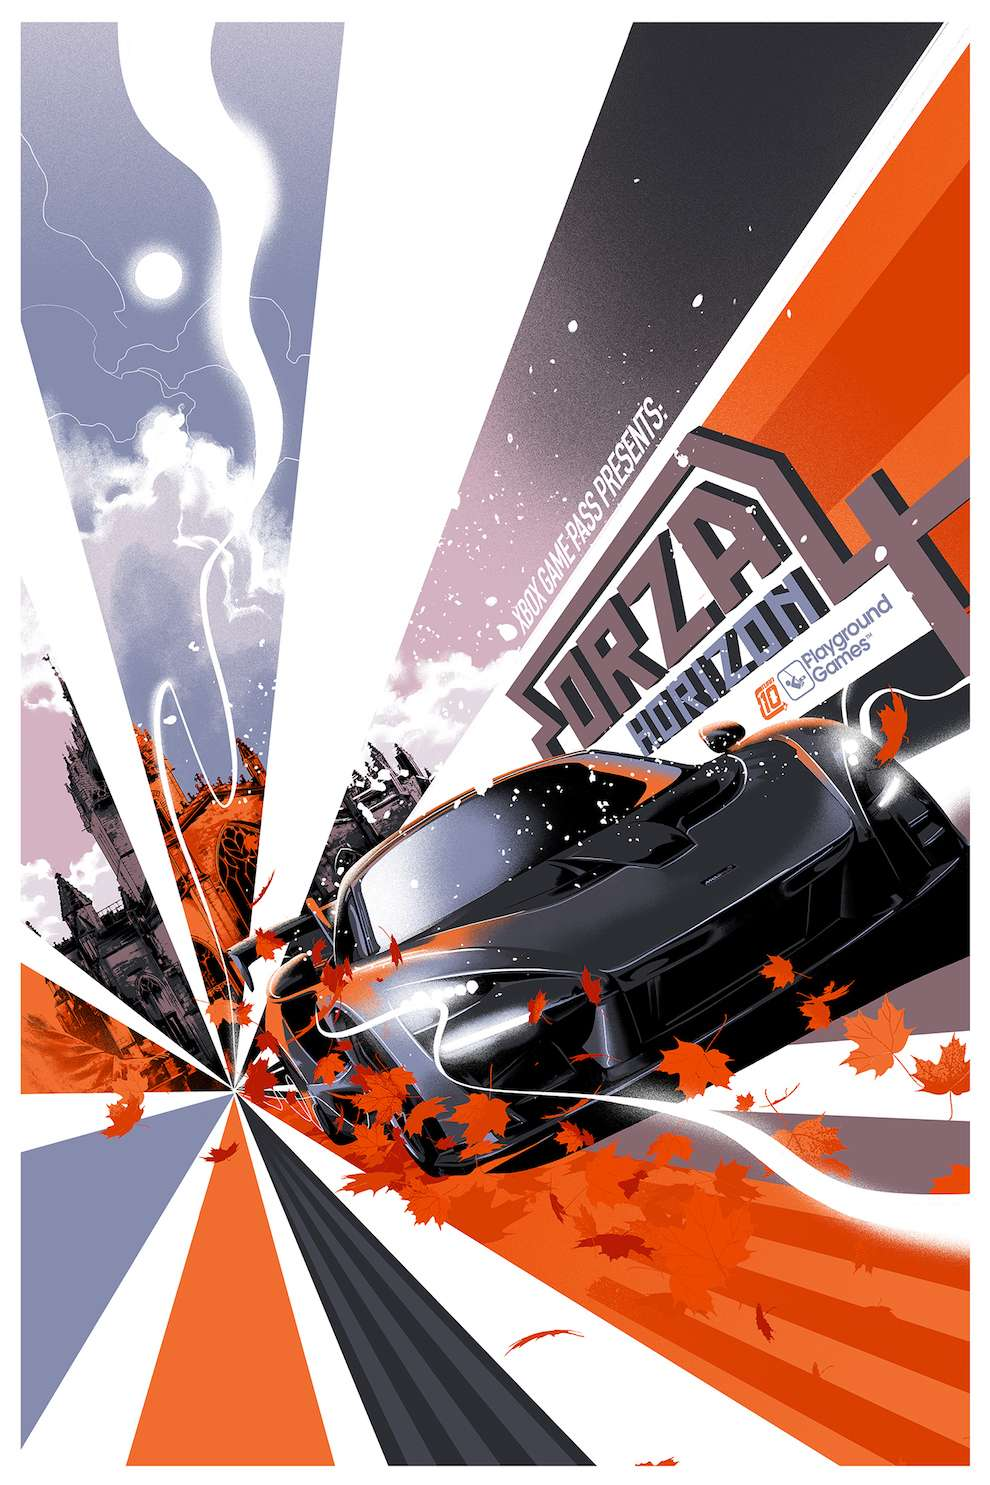 Matt Taylor, Digital & textural illustration of a racing car with a cathedral in a background